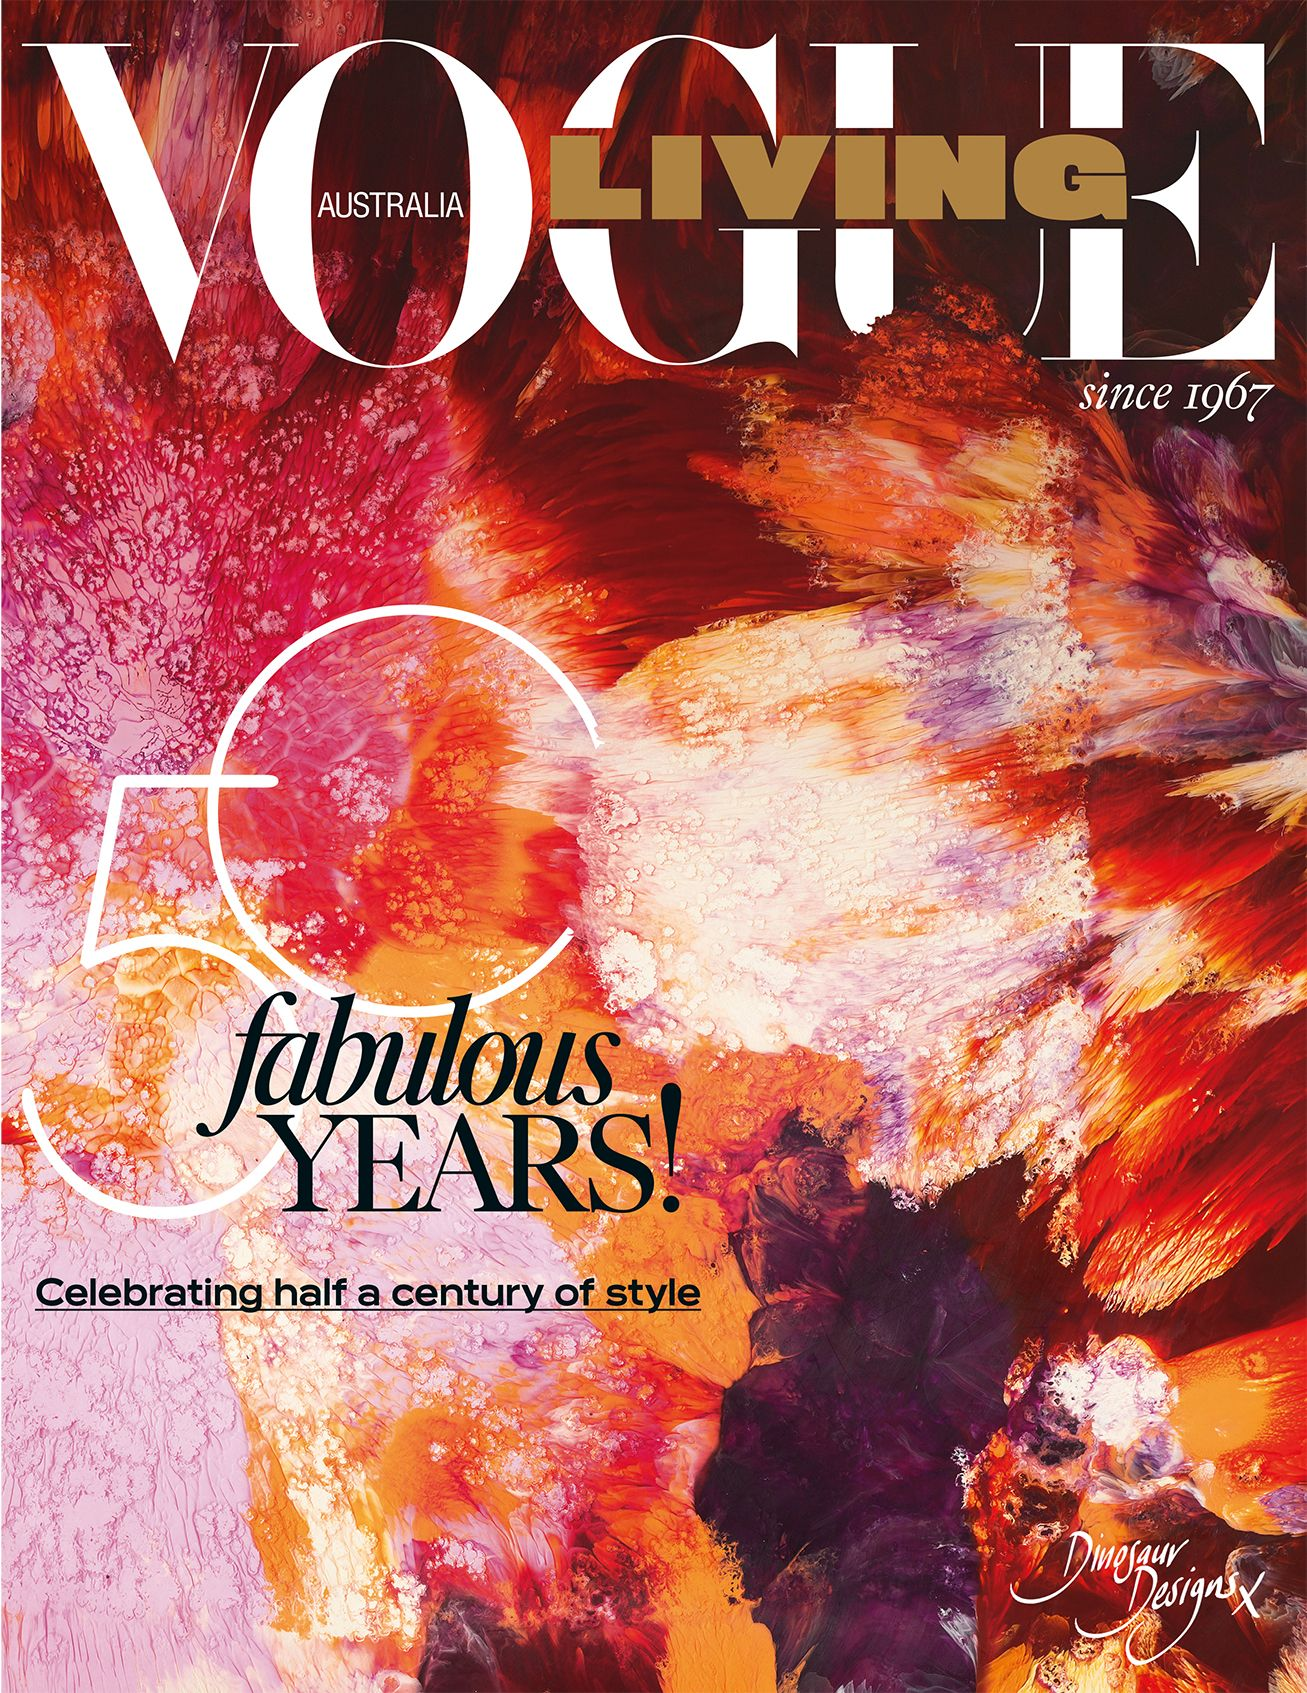 The May June 2017 issue of Vogue Living is on sale now.  18f2d8deb